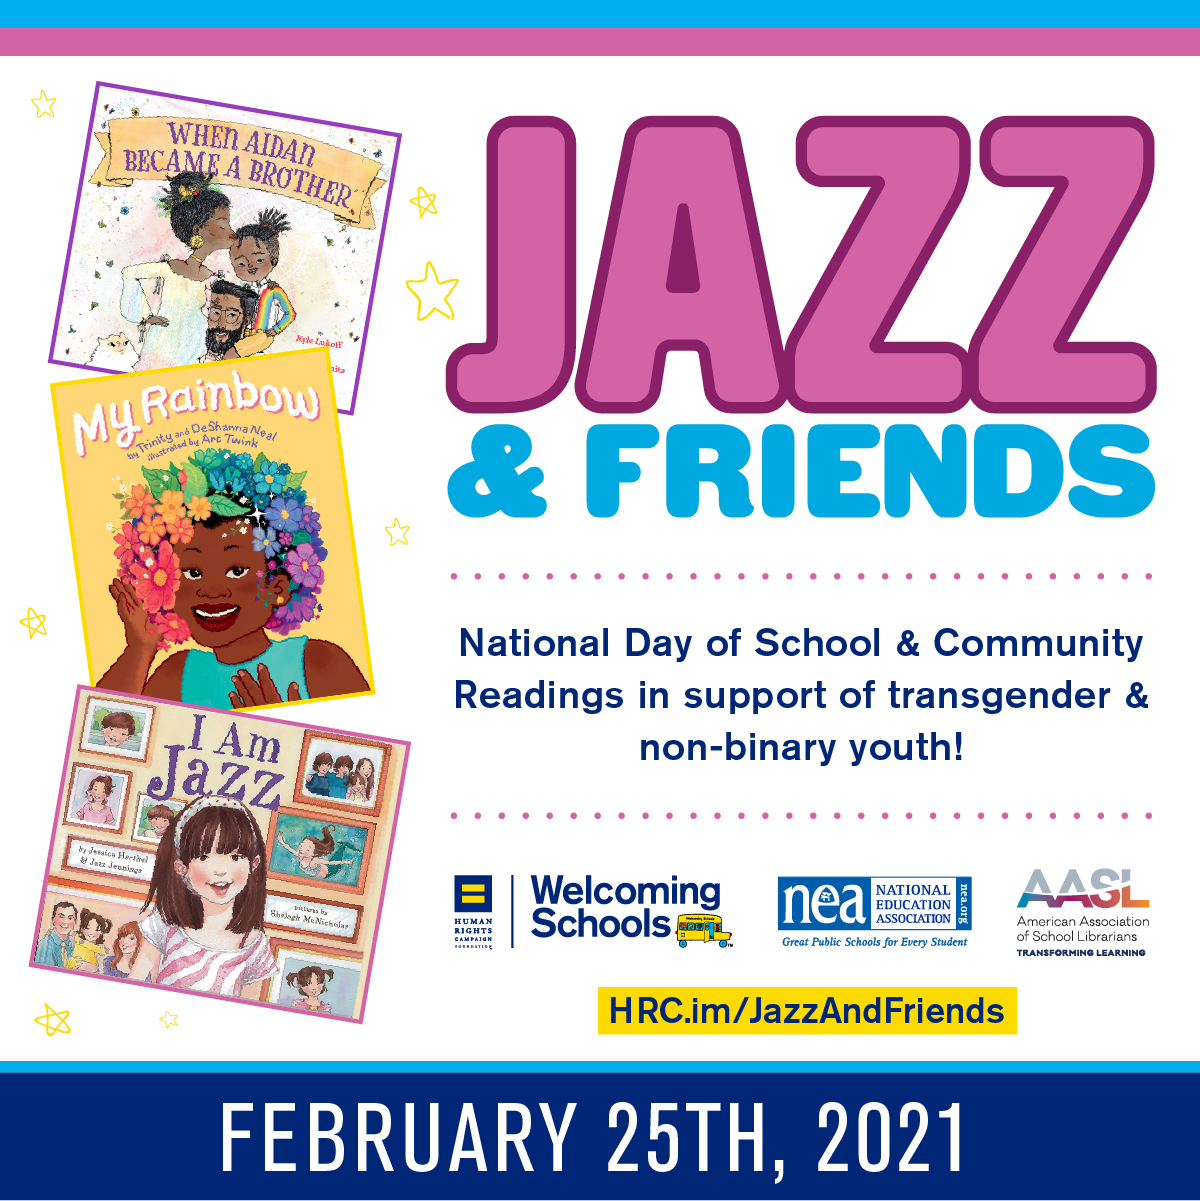 graphic for Jazz & Friends event